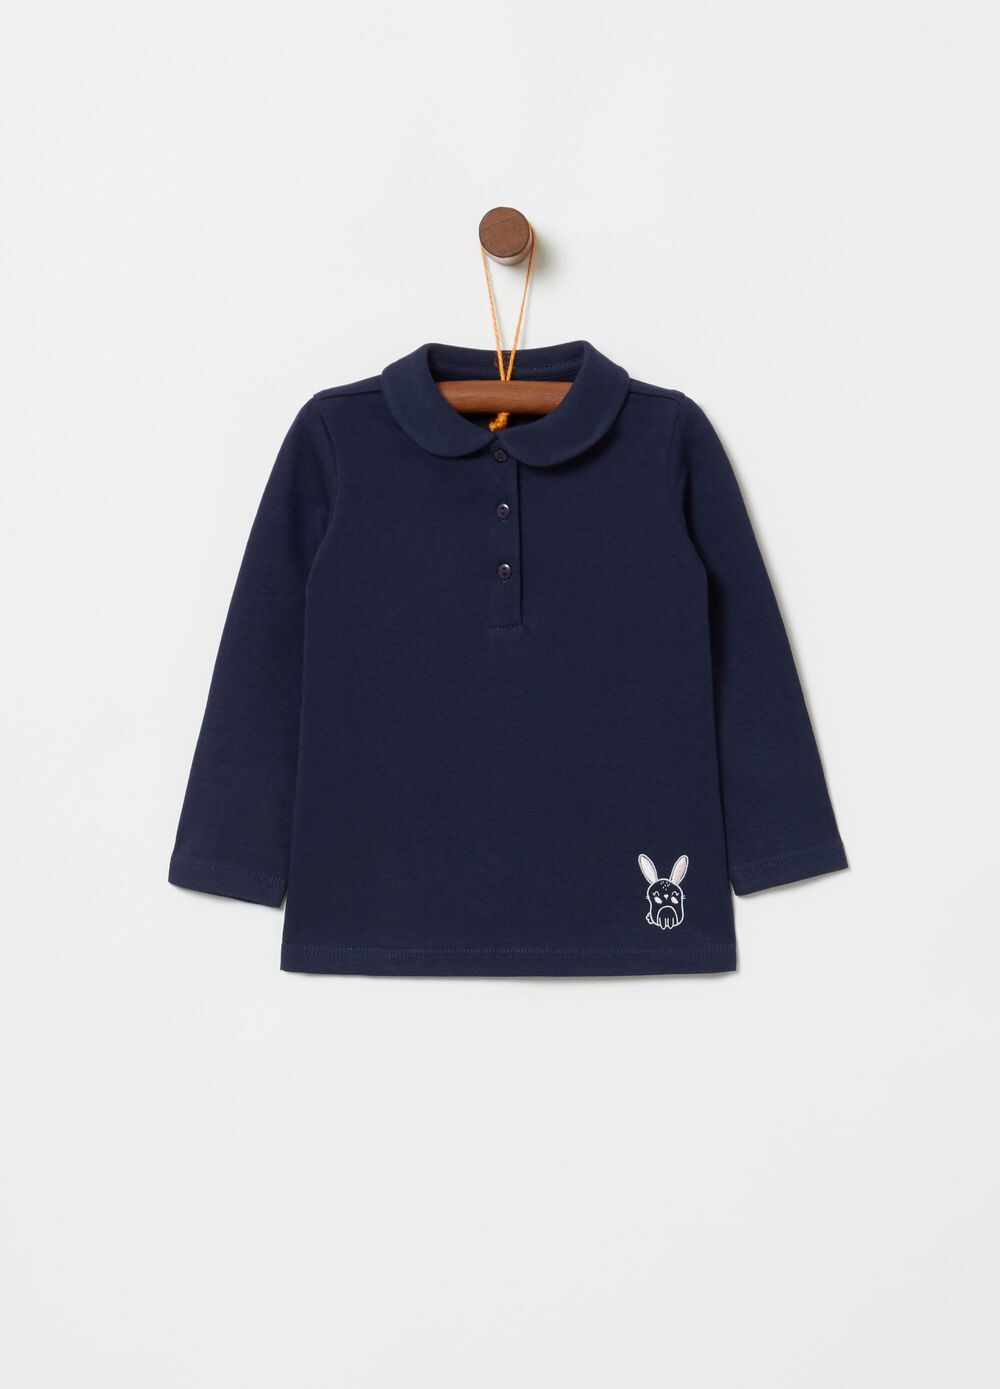 100% cotton polo shirt with rabbit print